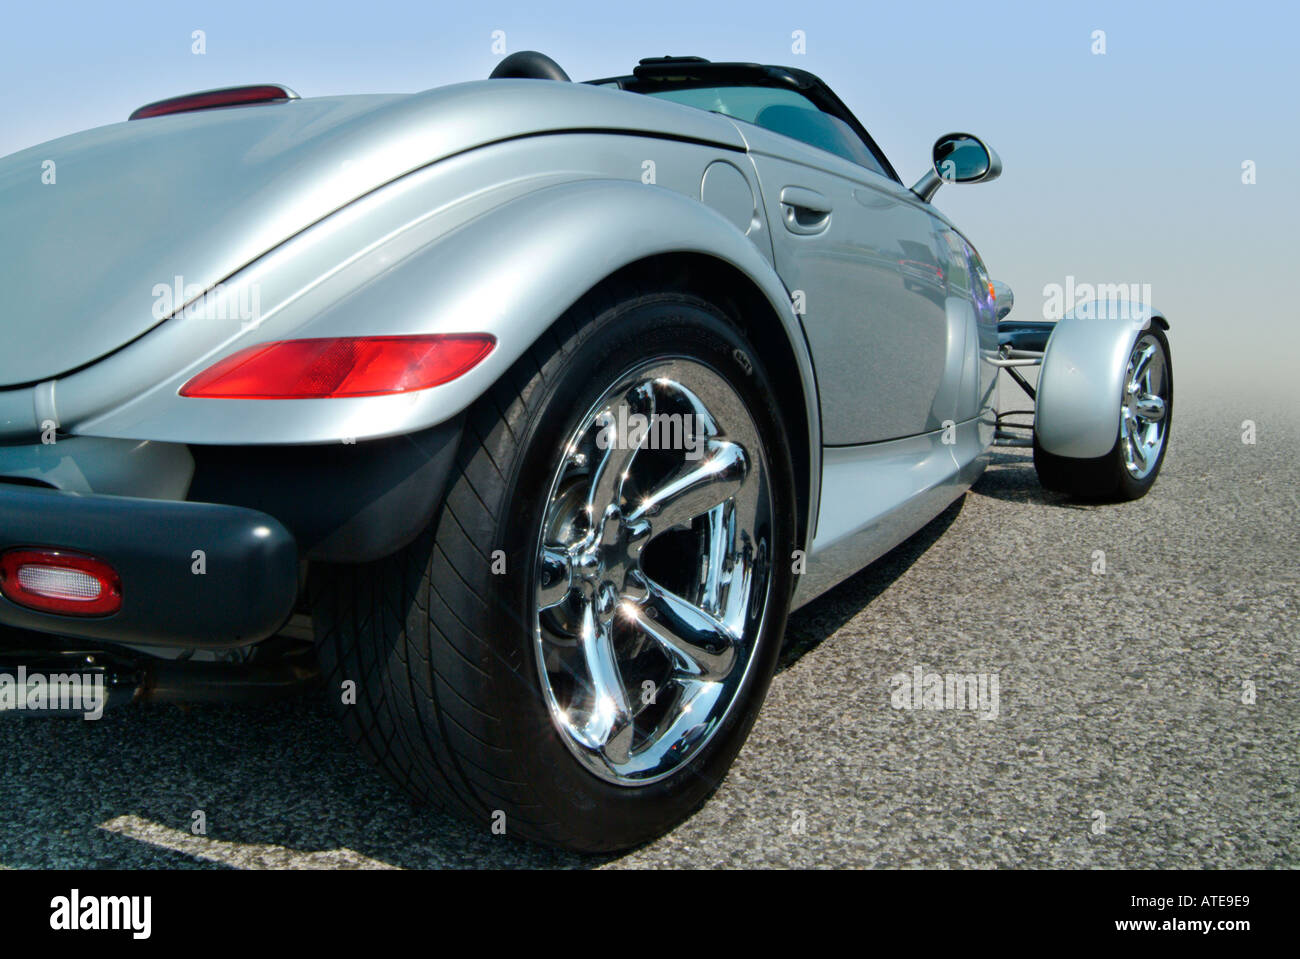 A modern hot rod. A silver Chrysler Prowler as seen from the rear ...